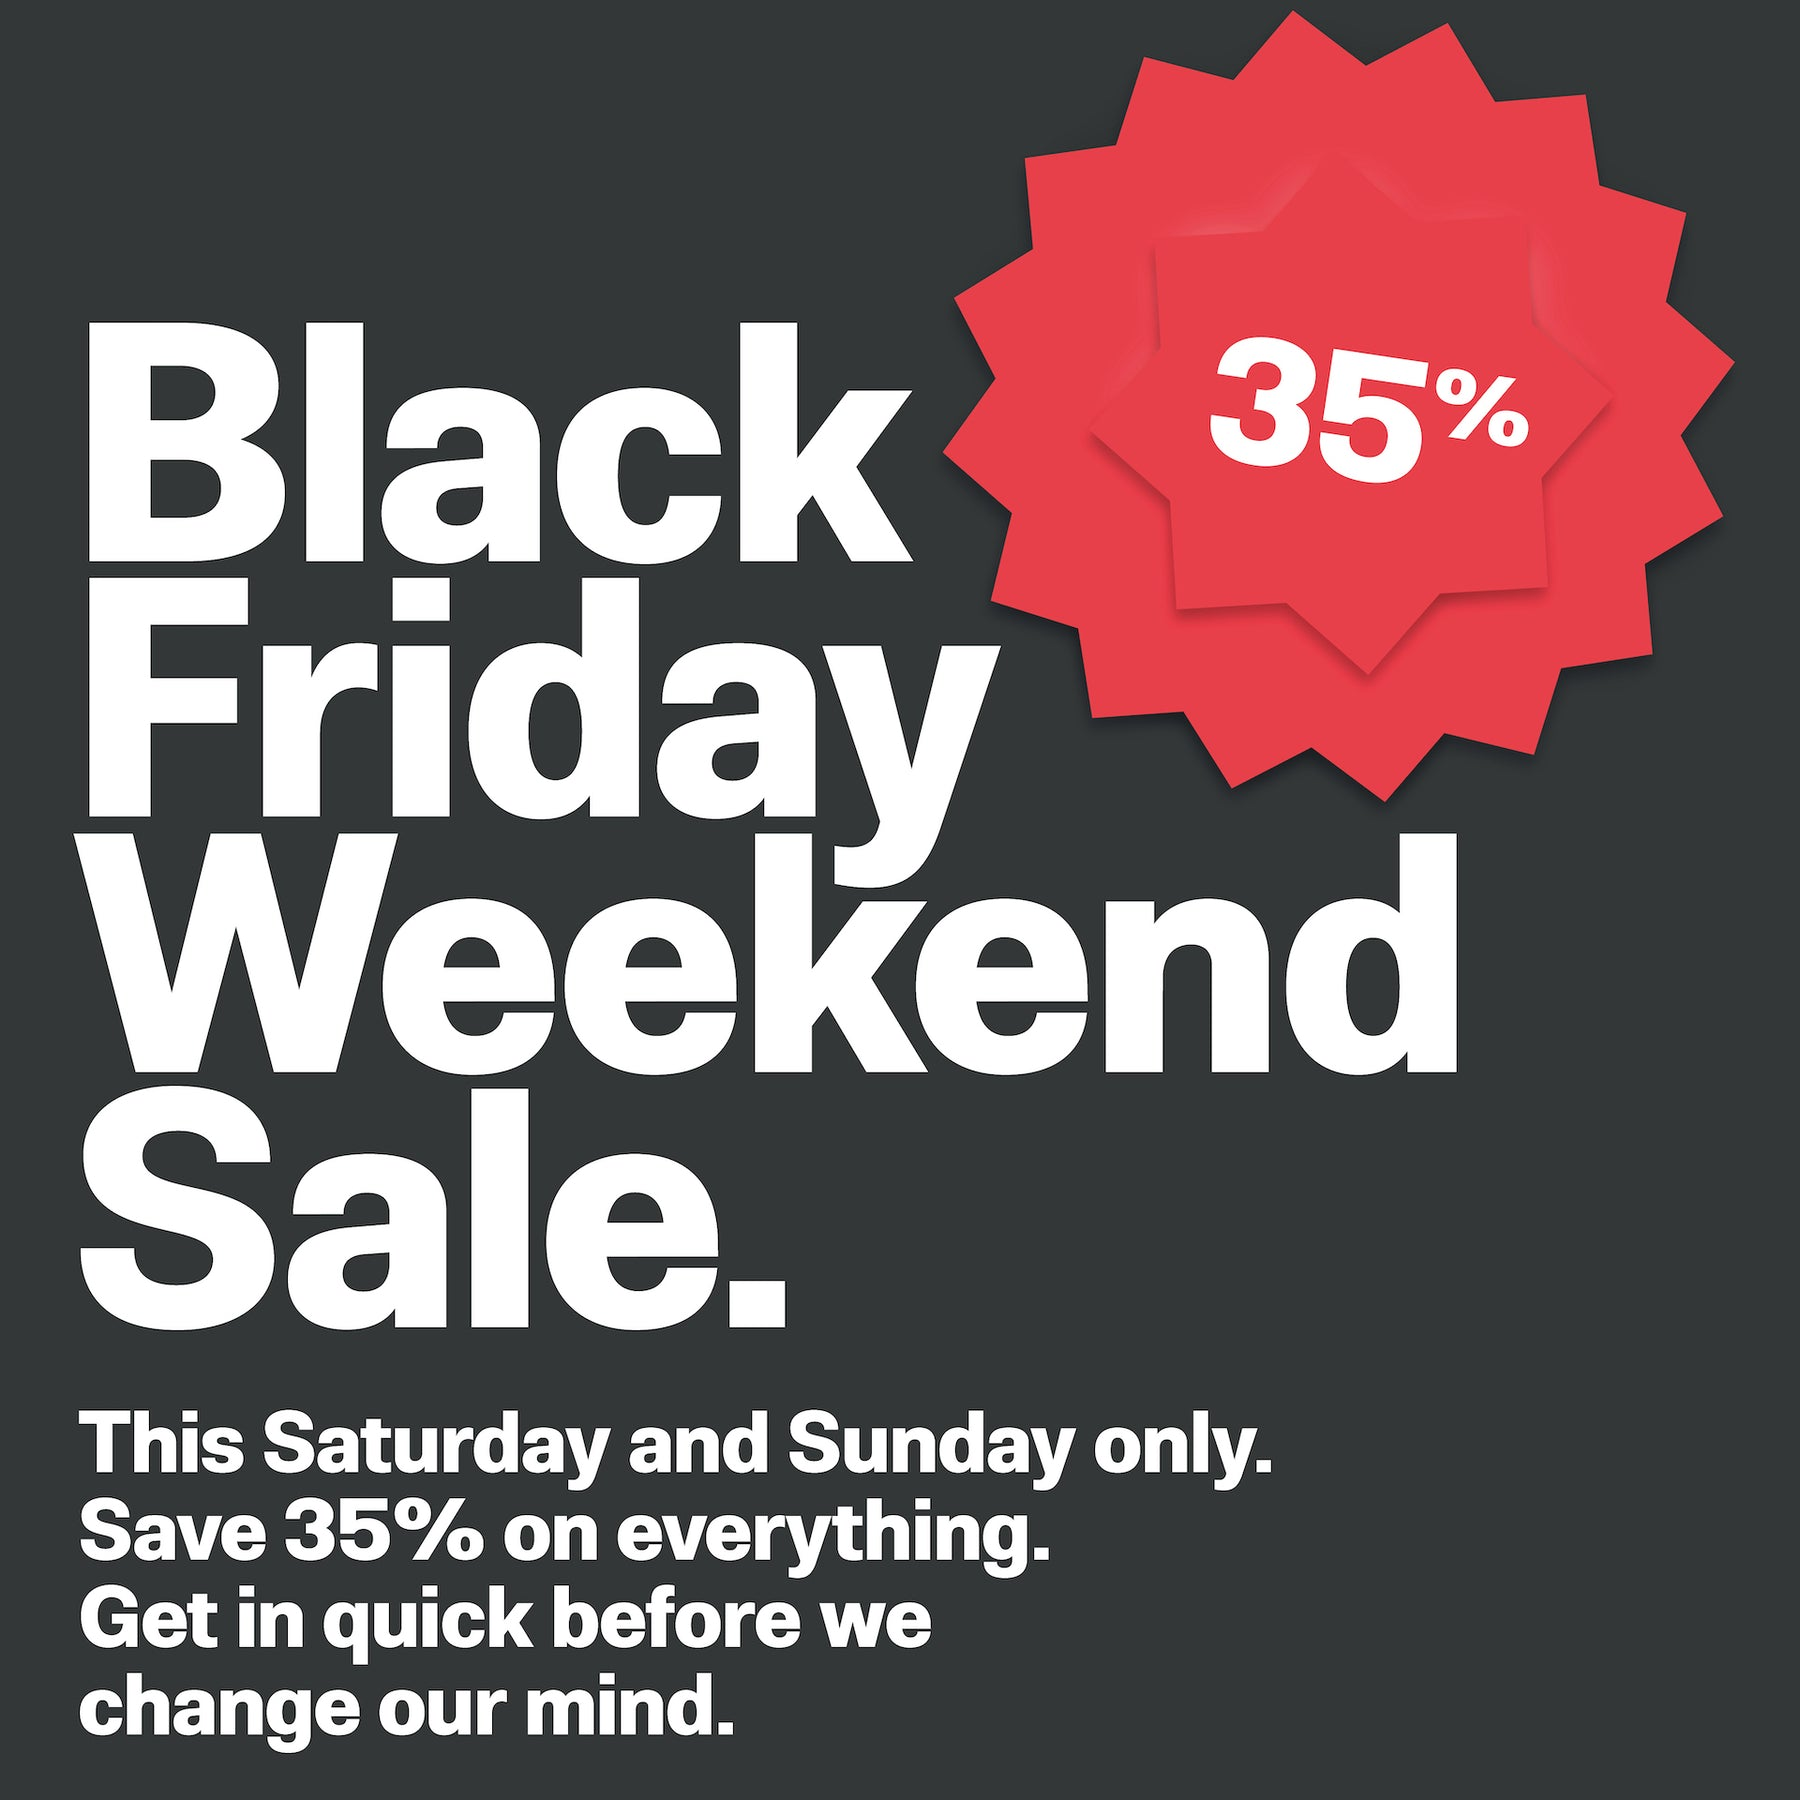 Black Friday Weekend Sale.